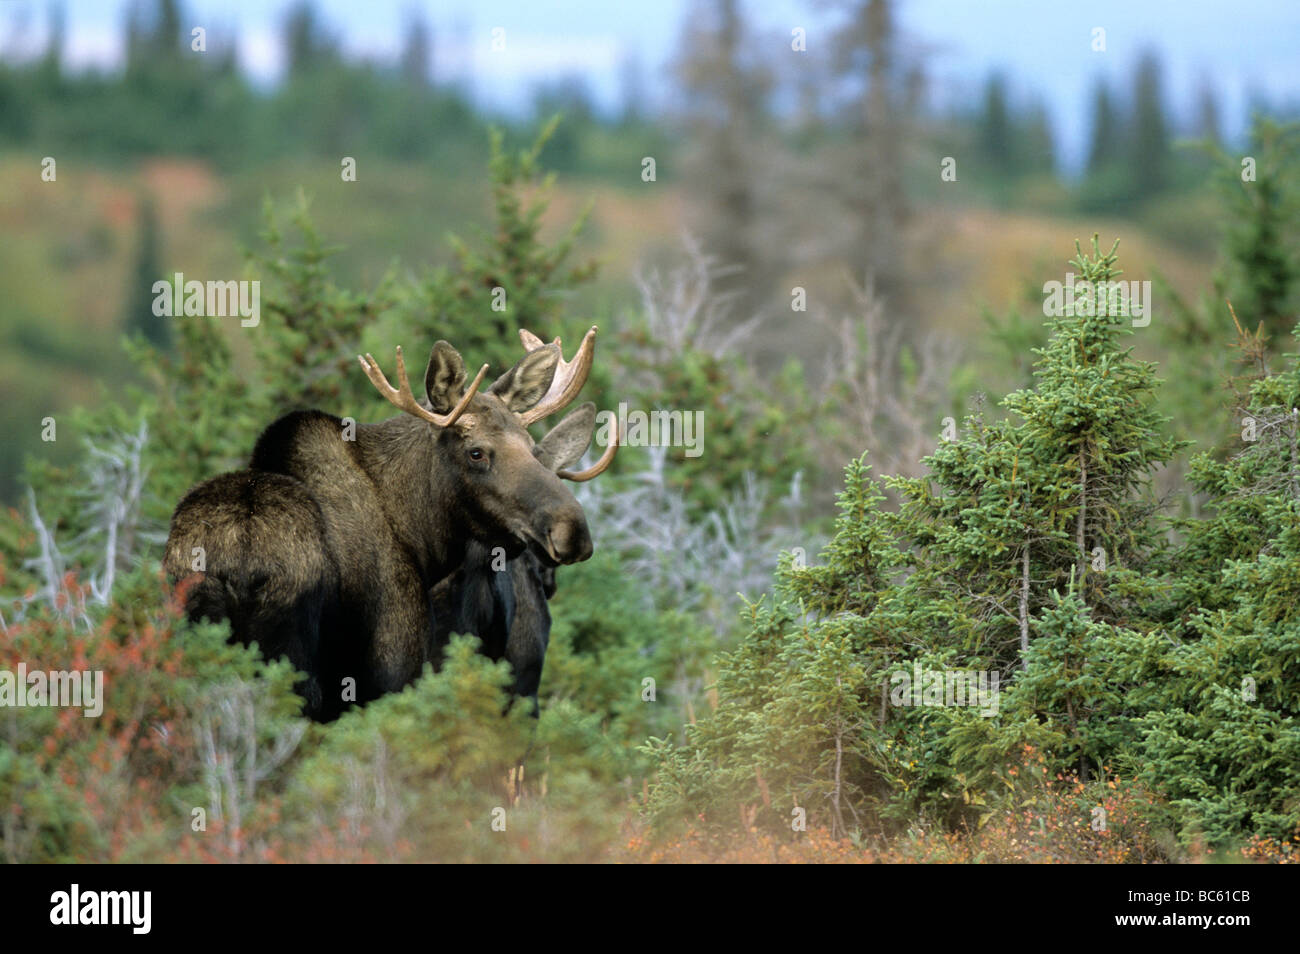 European elk (Alces alces) standing in forest, Chugach State Park, Alaska, USA Stock Photo